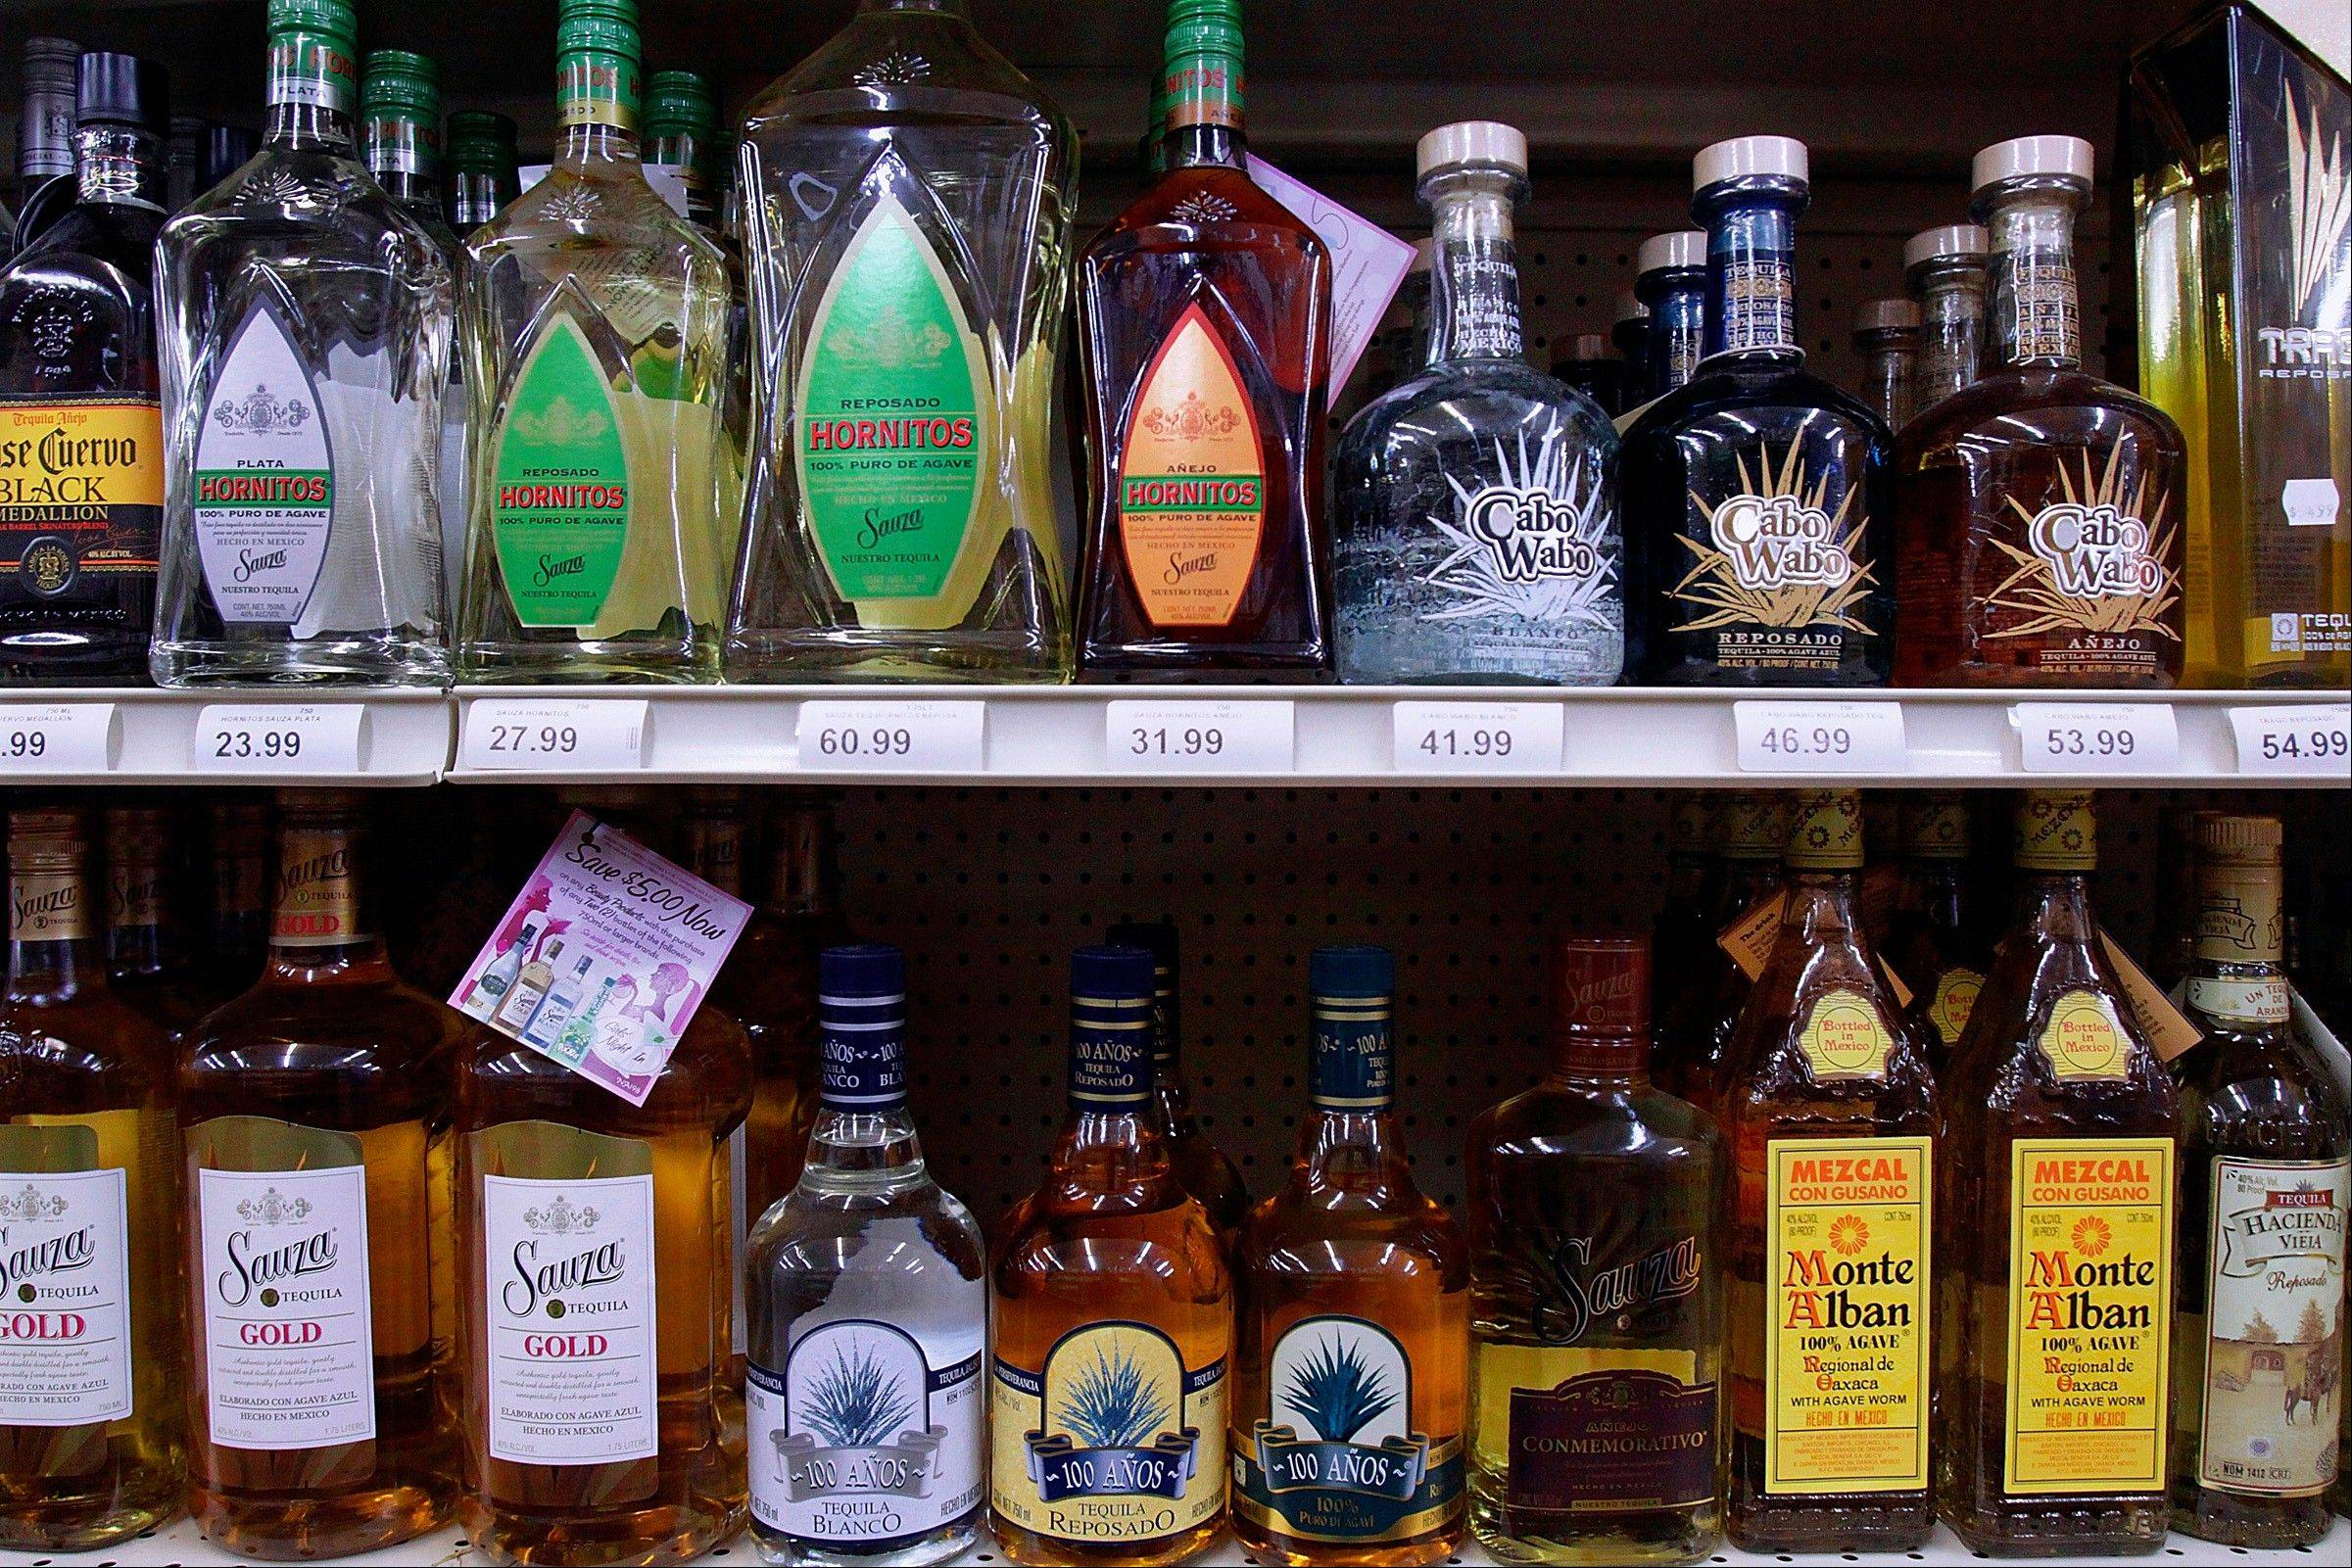 In August 2009, bottles of alcohol are seen lining the shelves of a liquor store in Springfield. It's the time of year that social host liability laws can leave parents vulnerable for teens drinking under their roofs.